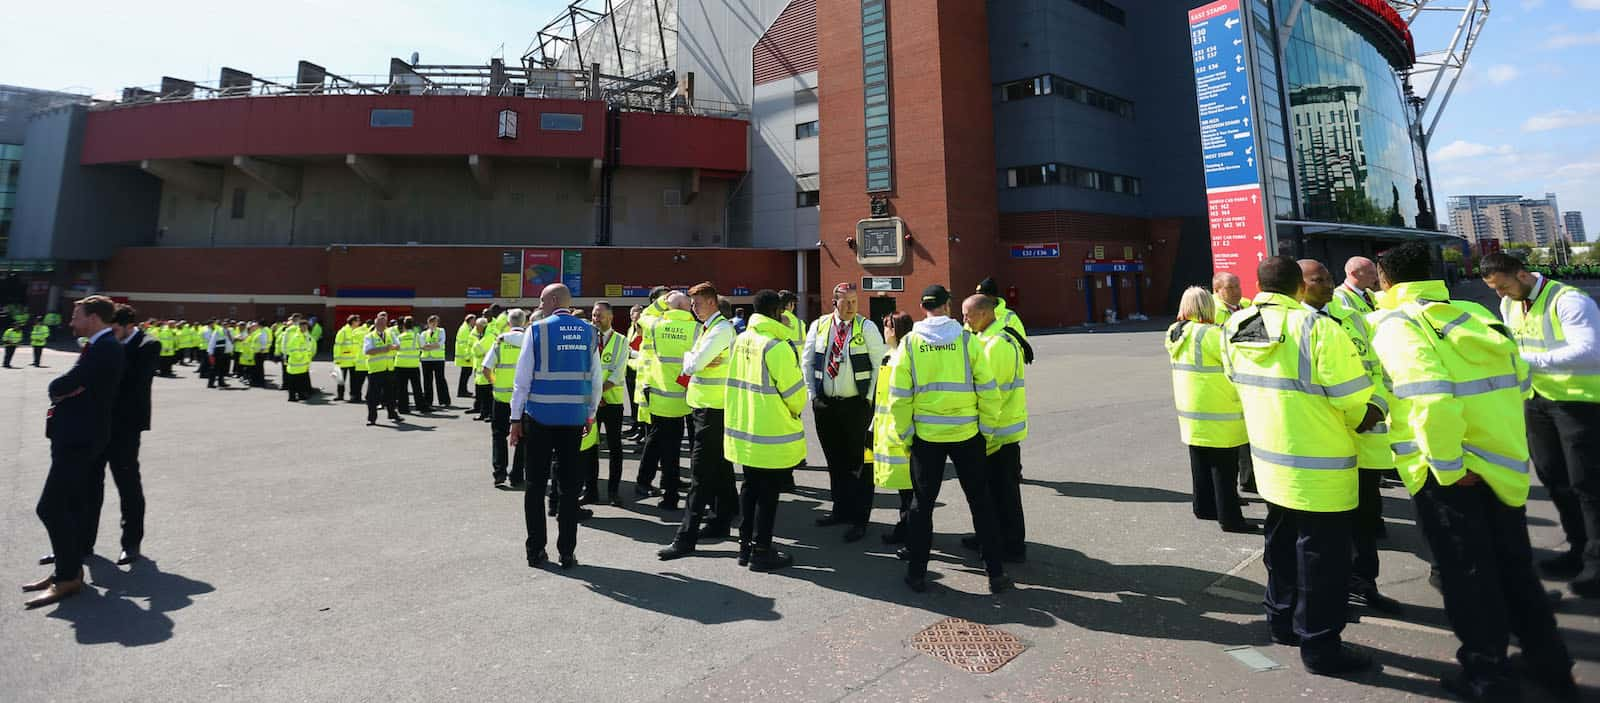 Man United vs Bournemouth: Police confirm package at Old Trafford was an elaborate hoax